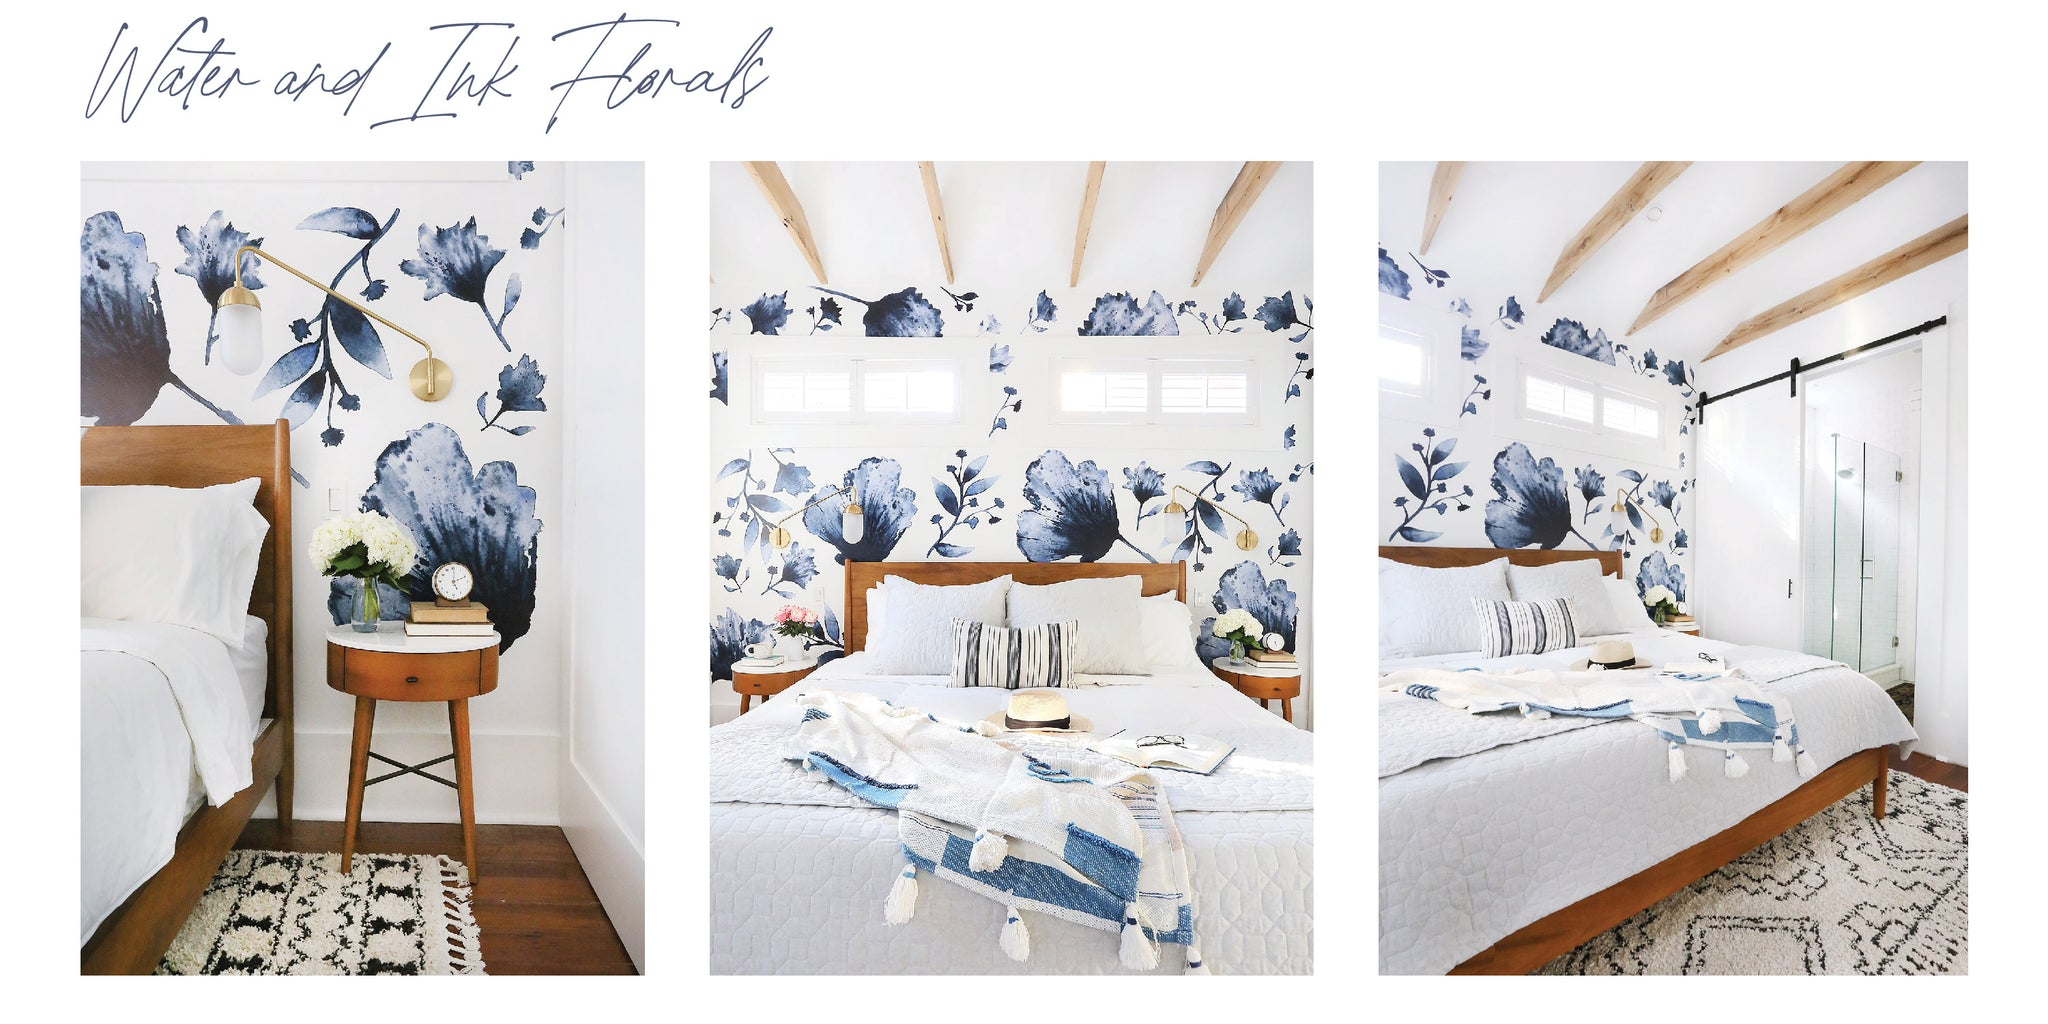 Water and Ink floral decals